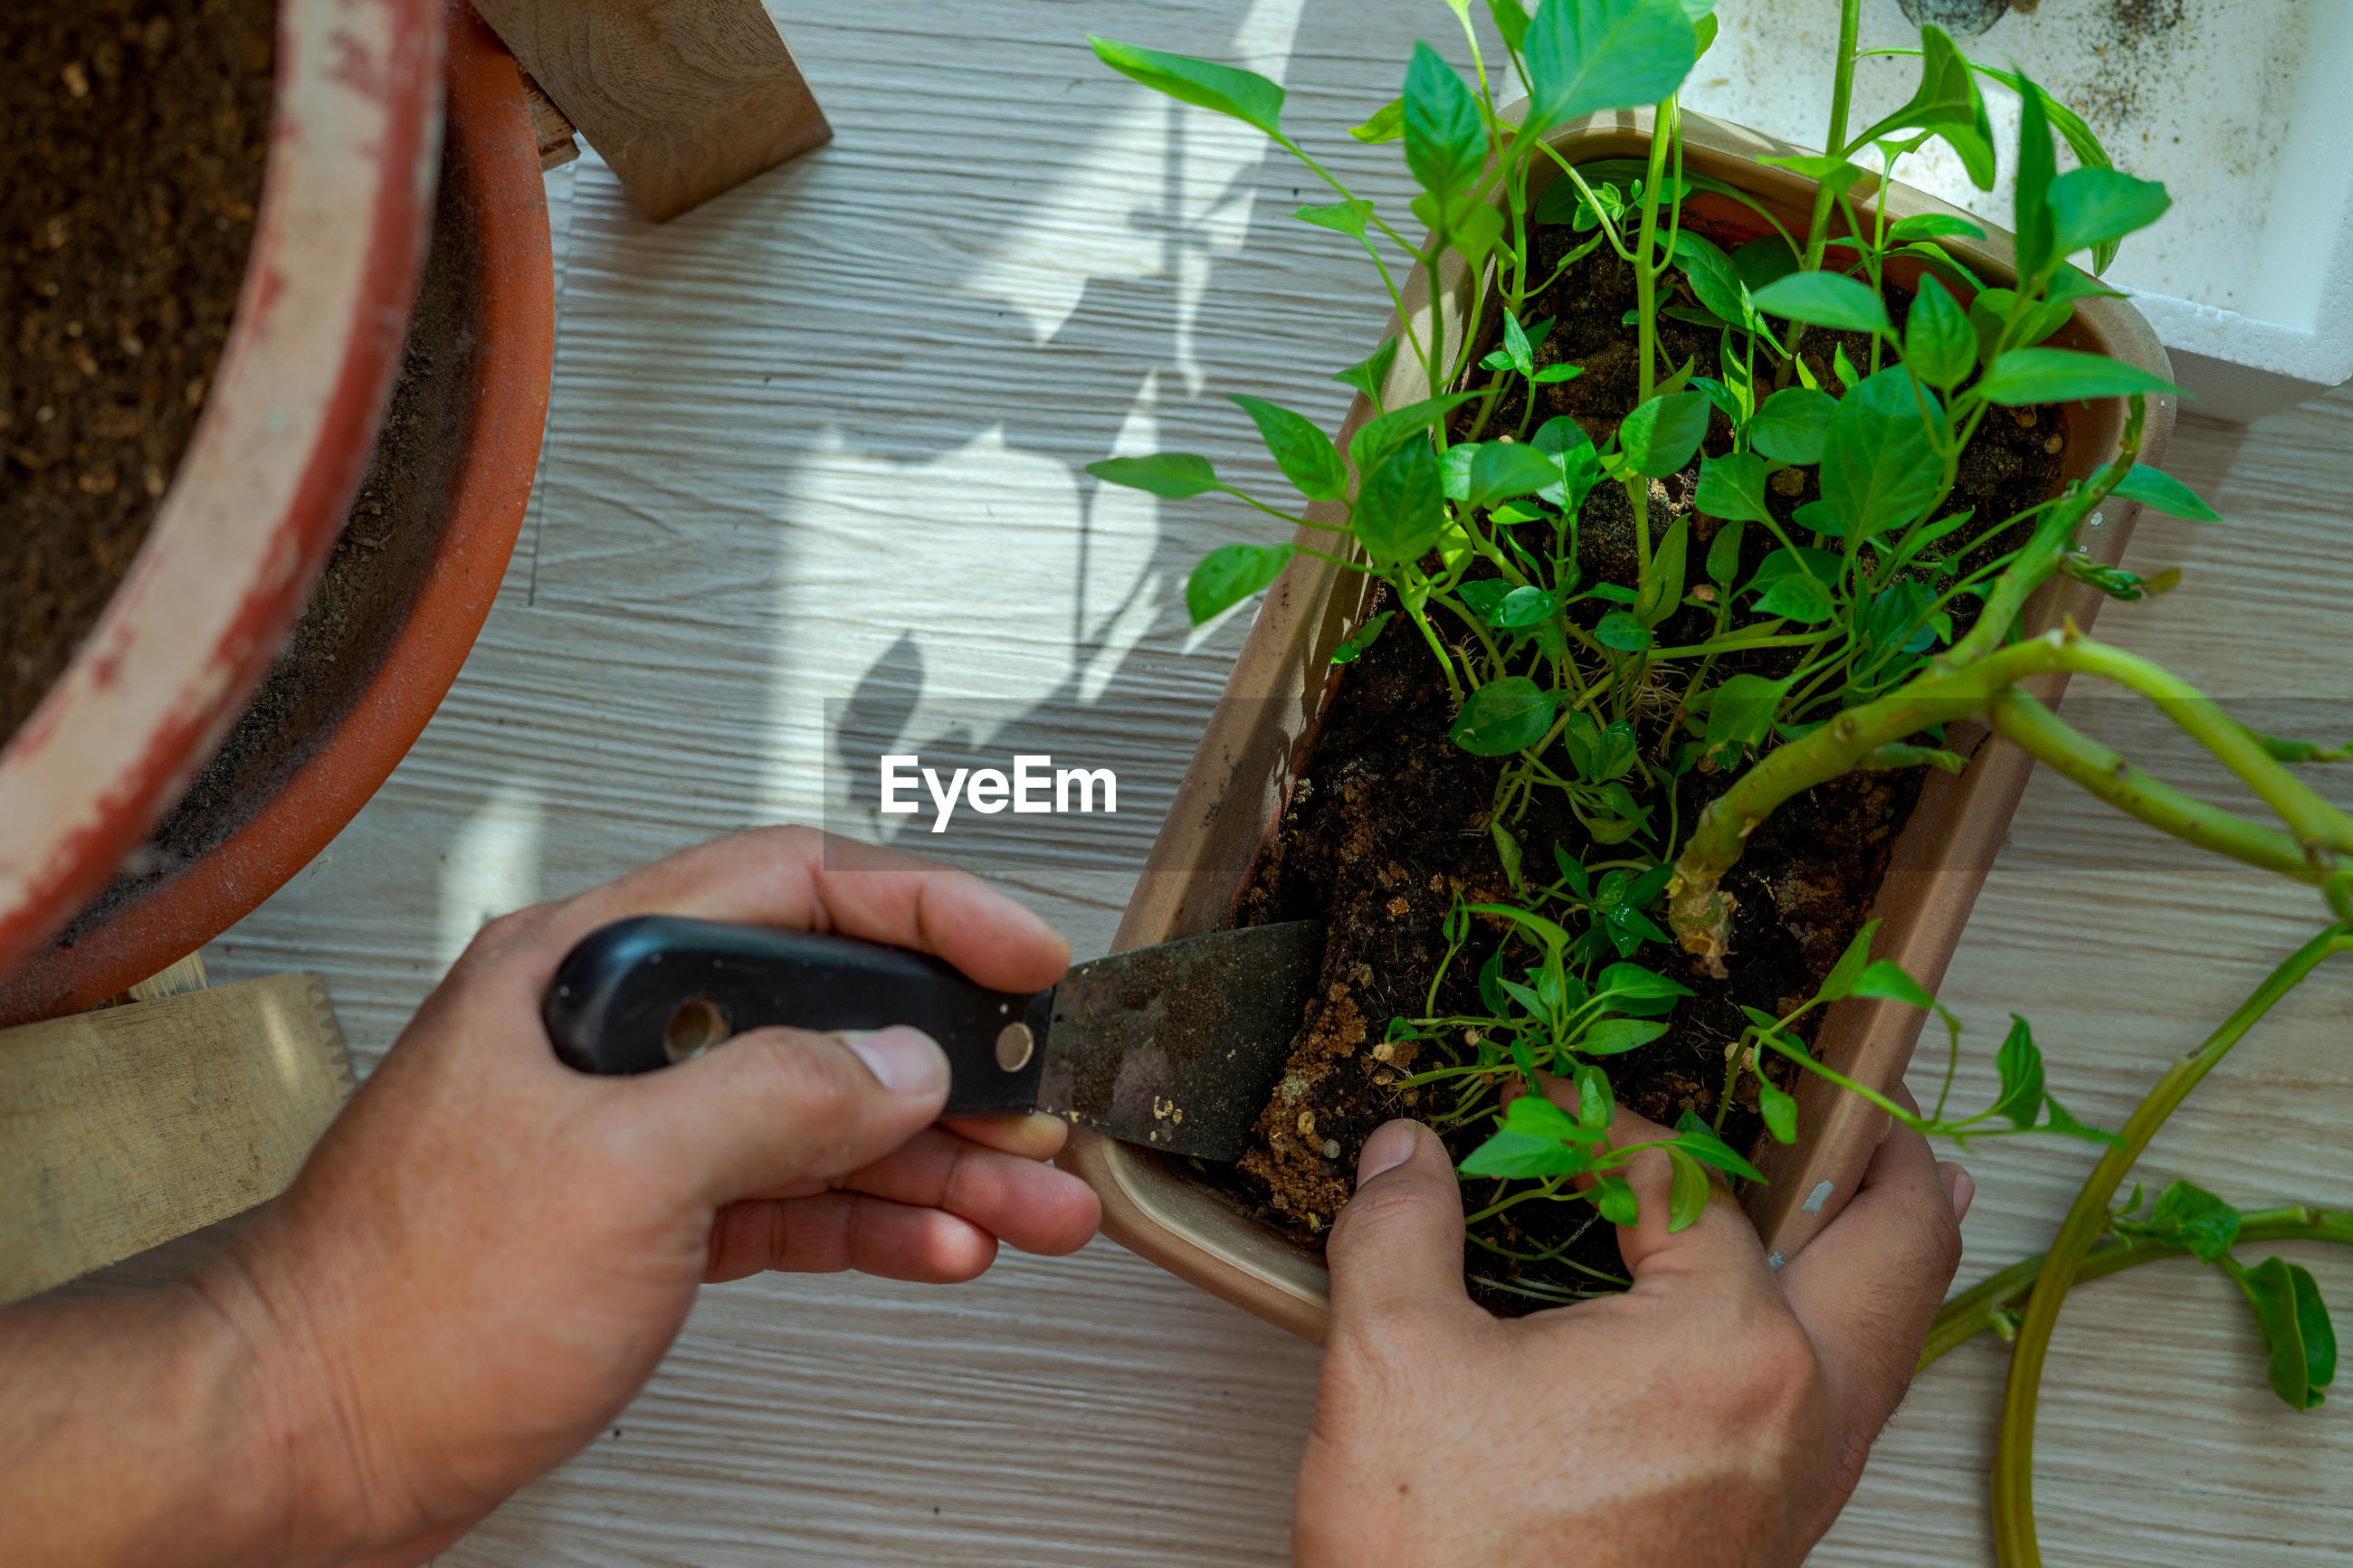 HIGH ANGLE VIEW OF PERSON HAND HOLDING FLOWER POT